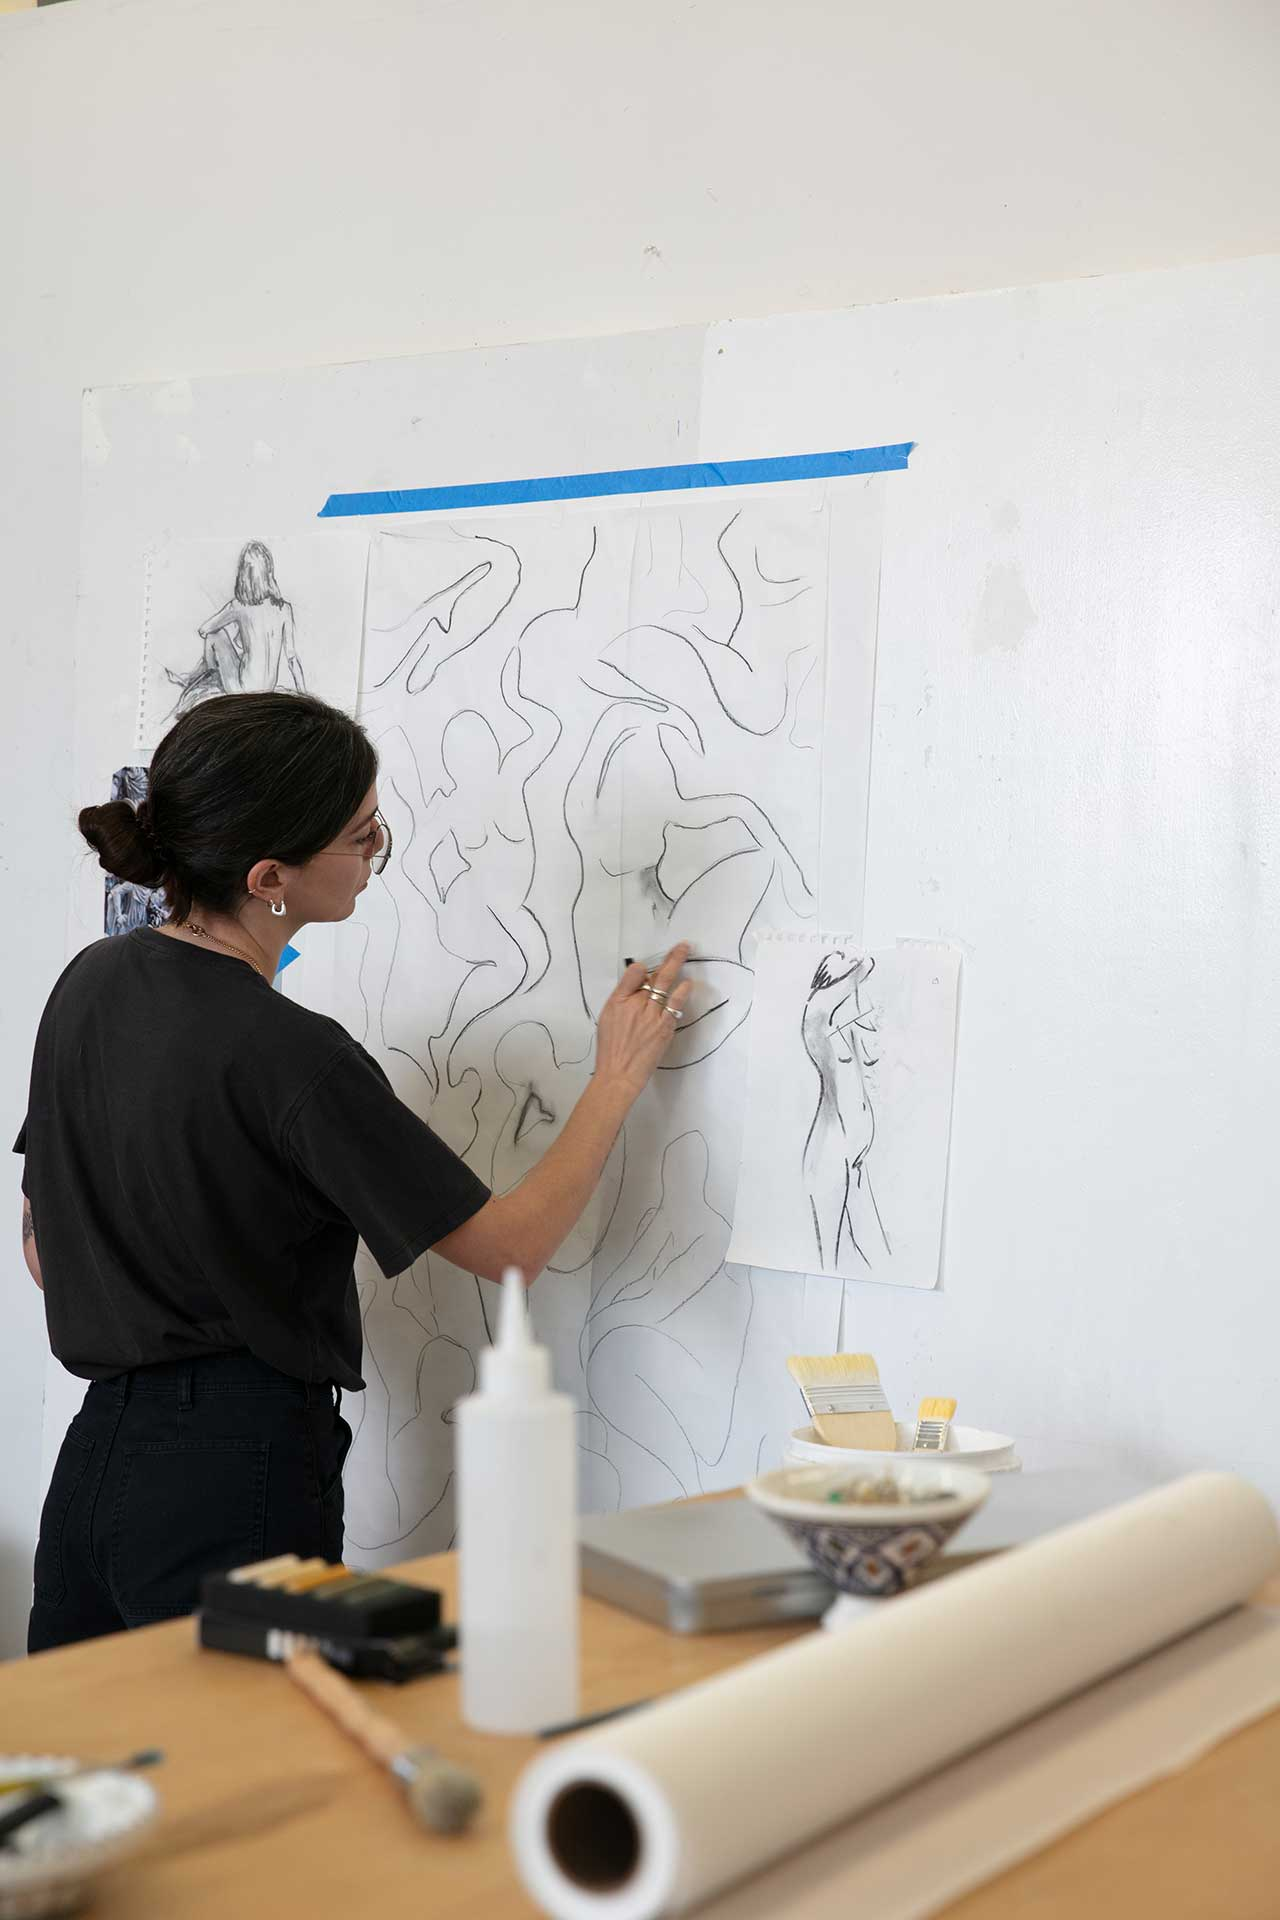 artist sketching on paper taped to a wall